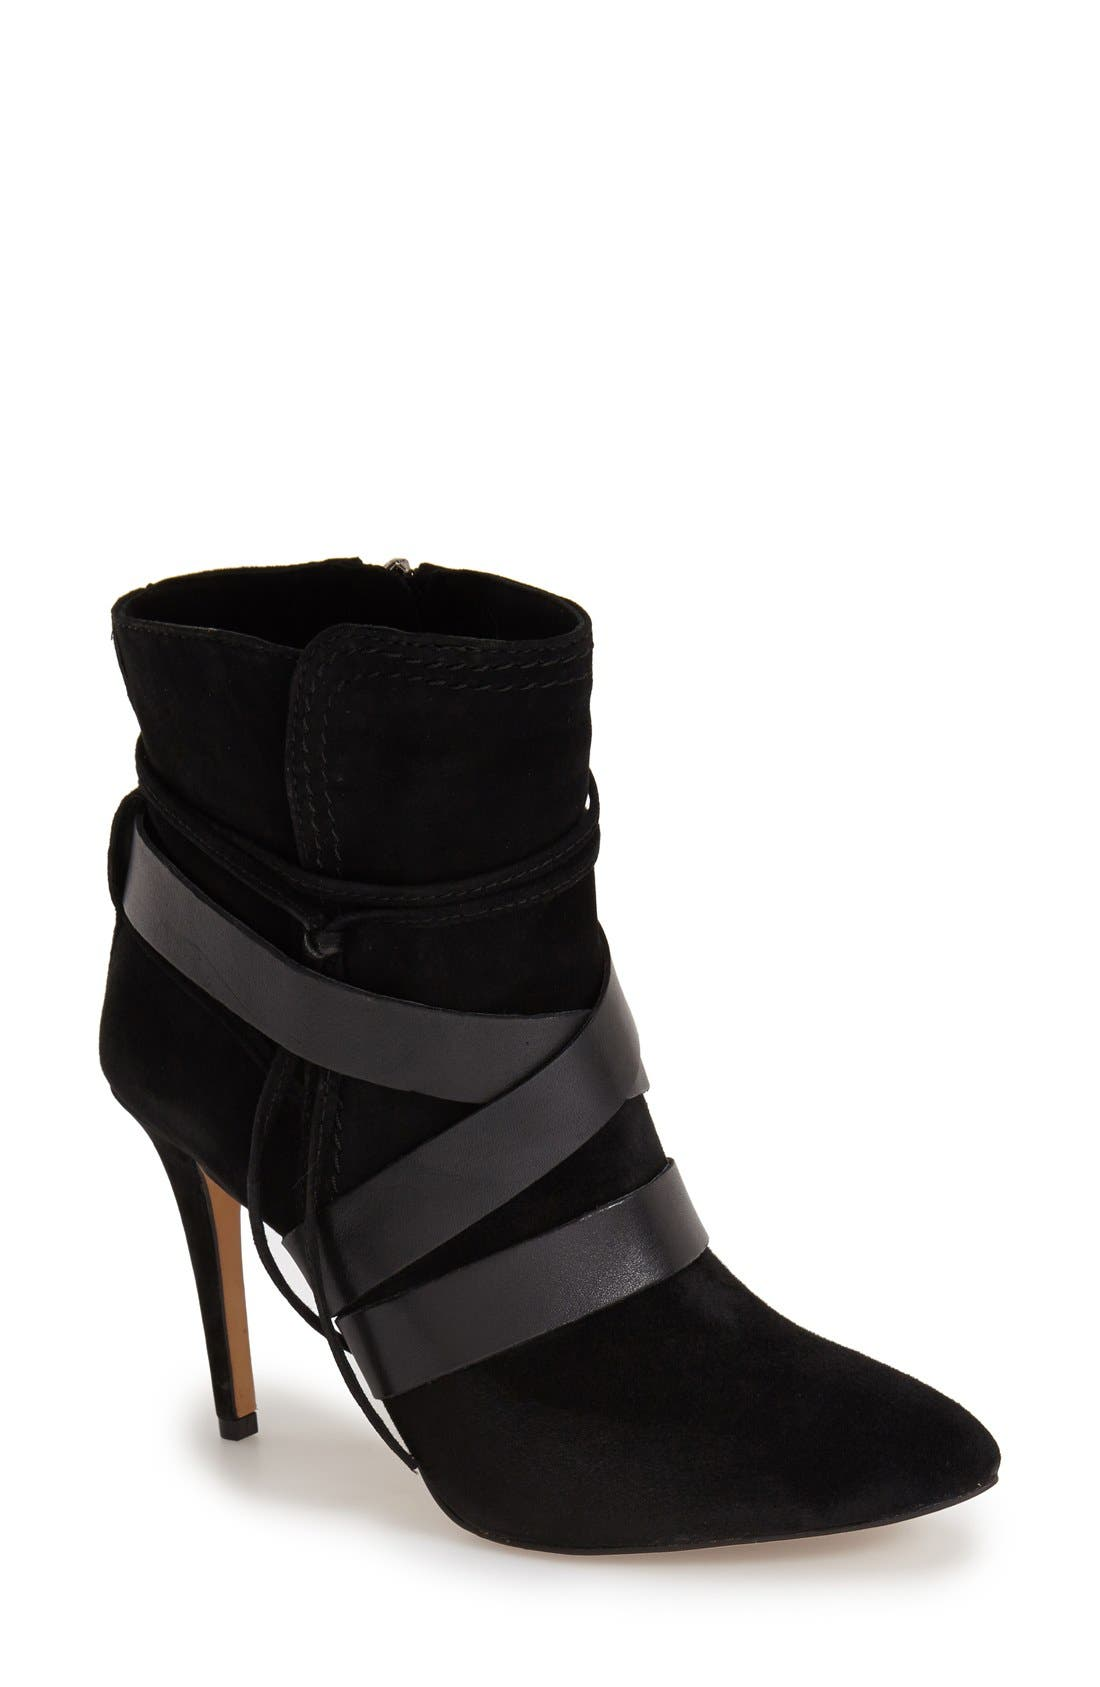 Alternate Image 1 Selected - Vince Camuto 'Solter' Pointy Toe Bootie (Women)